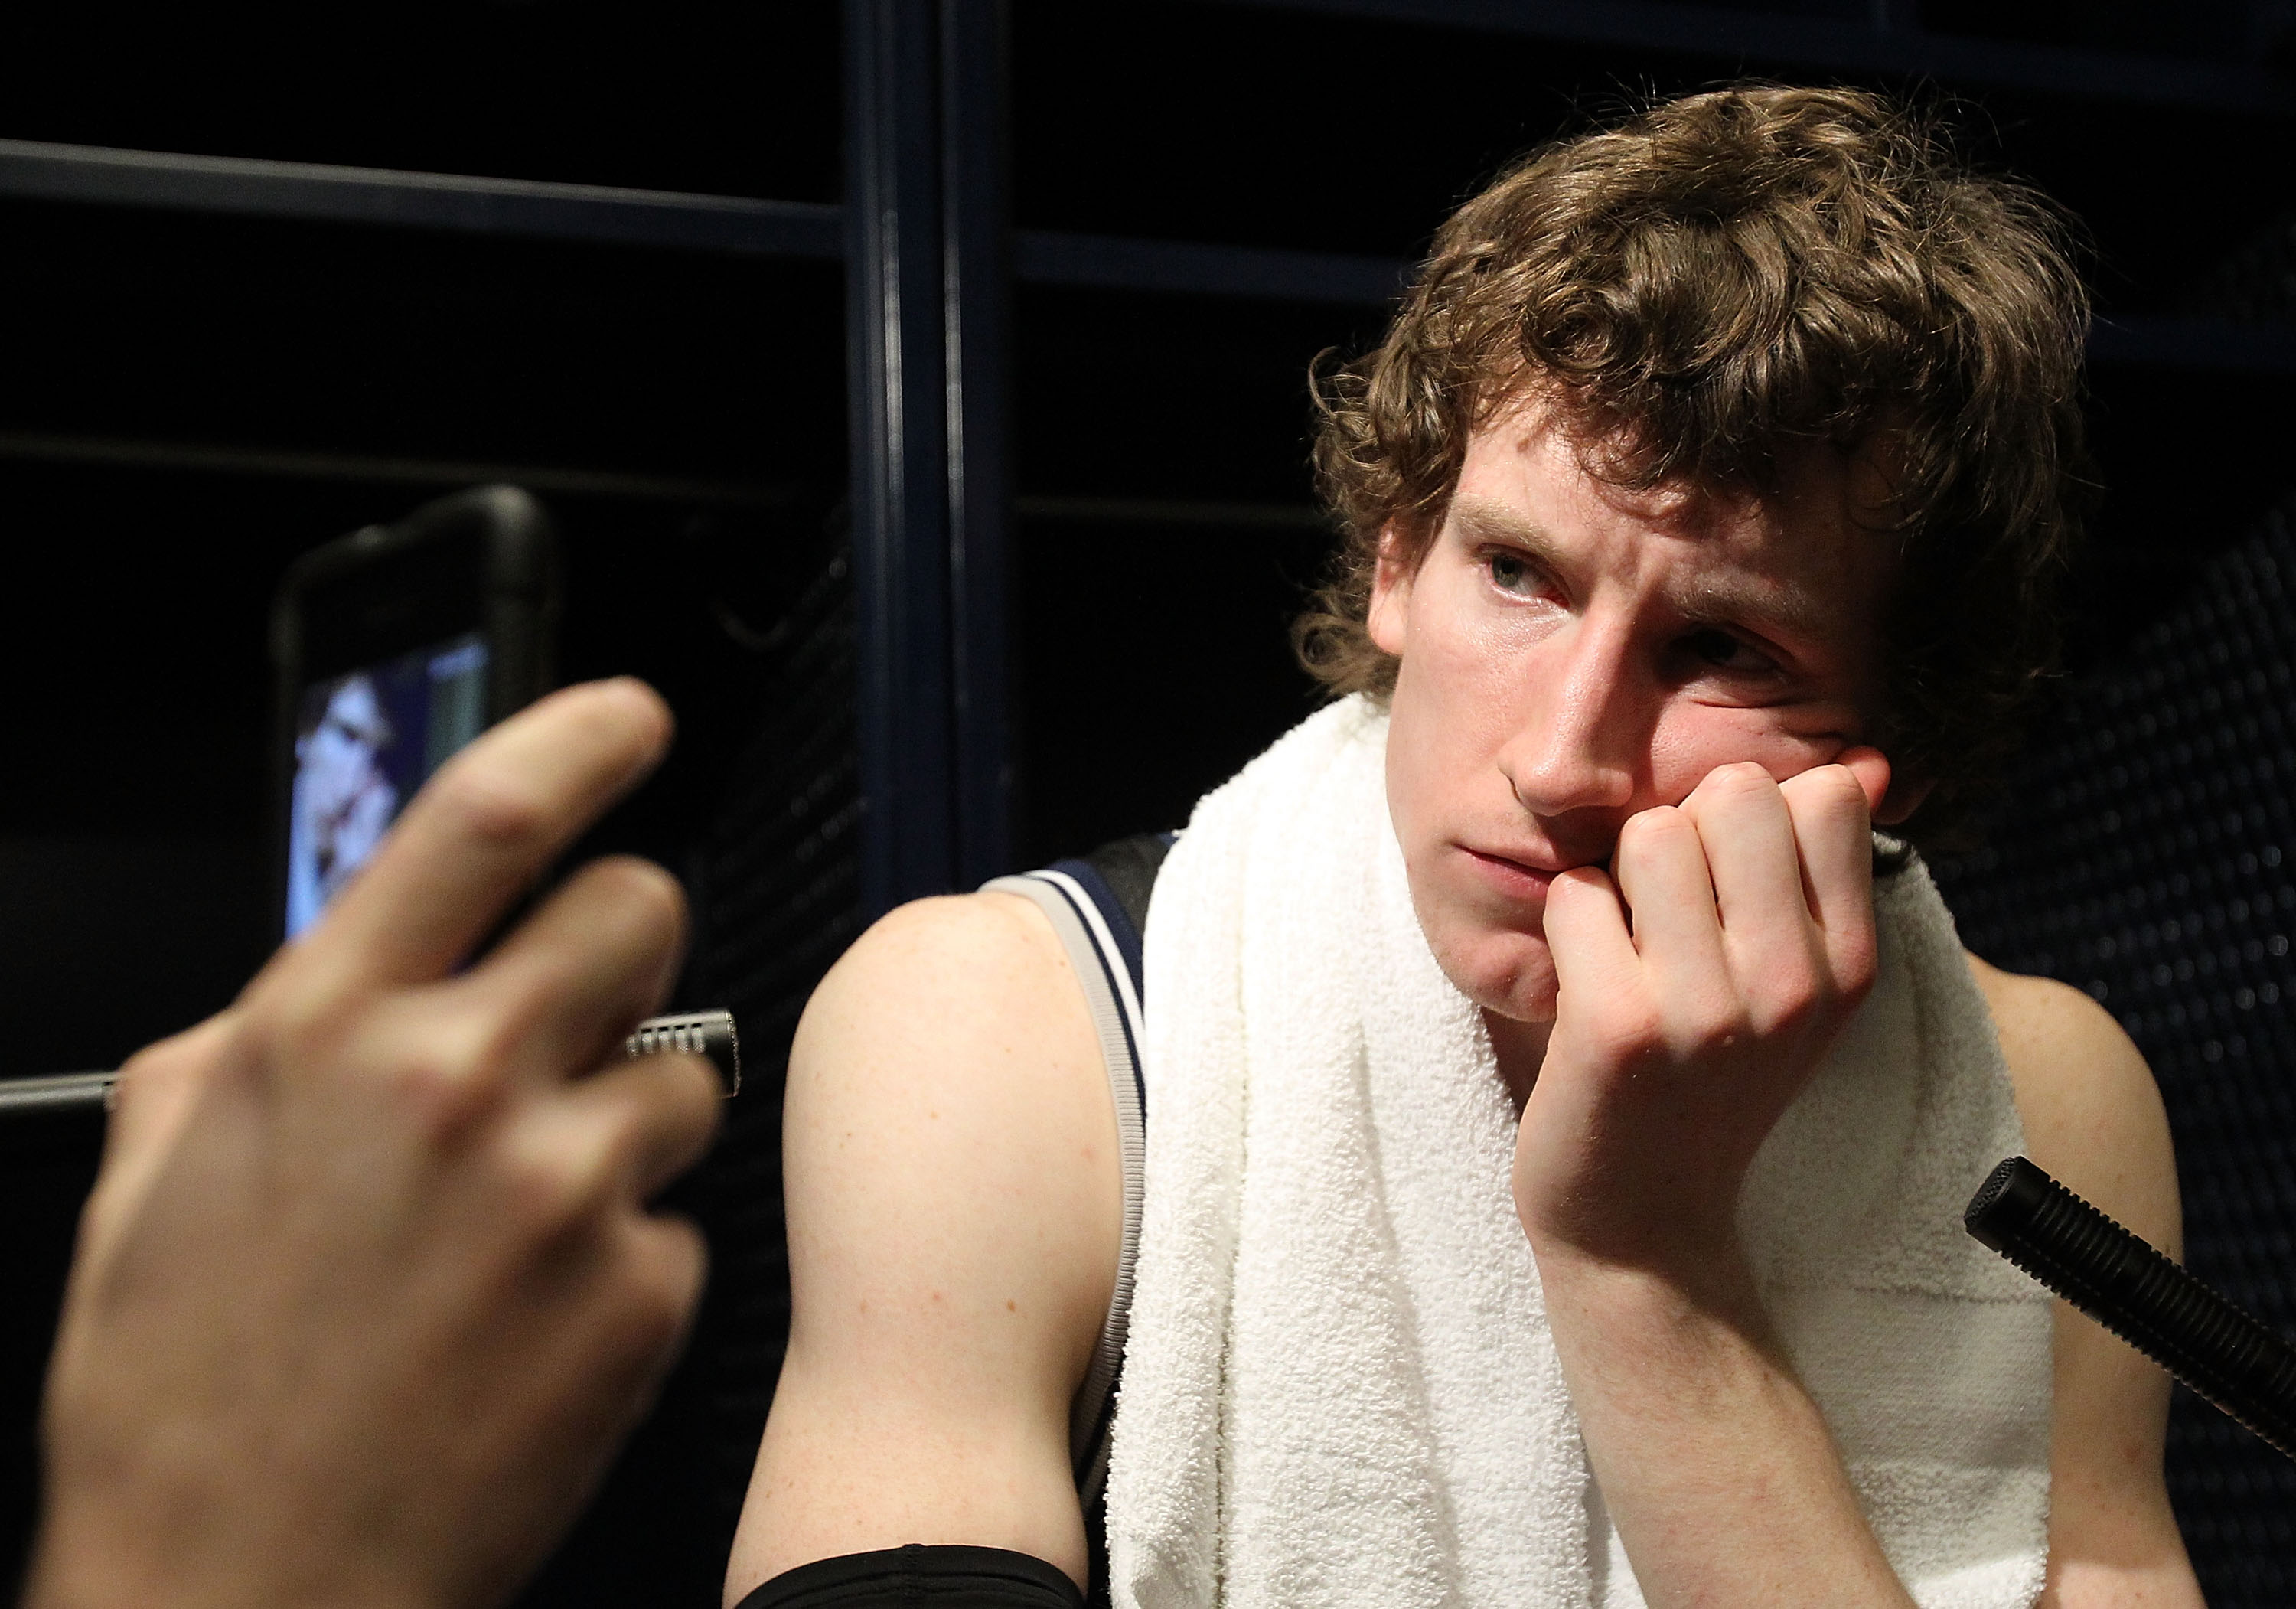 HOUSTON, TX - APRIL 04:  Matt Howard #54 of the Butler Bulldogs talks to the media after losing to the Connecticut Huskies in the National Championship Game of the 2011 NCAA Division I Men's Basketball Tournament at Reliant Stadium on April 4, 2011 in Hou